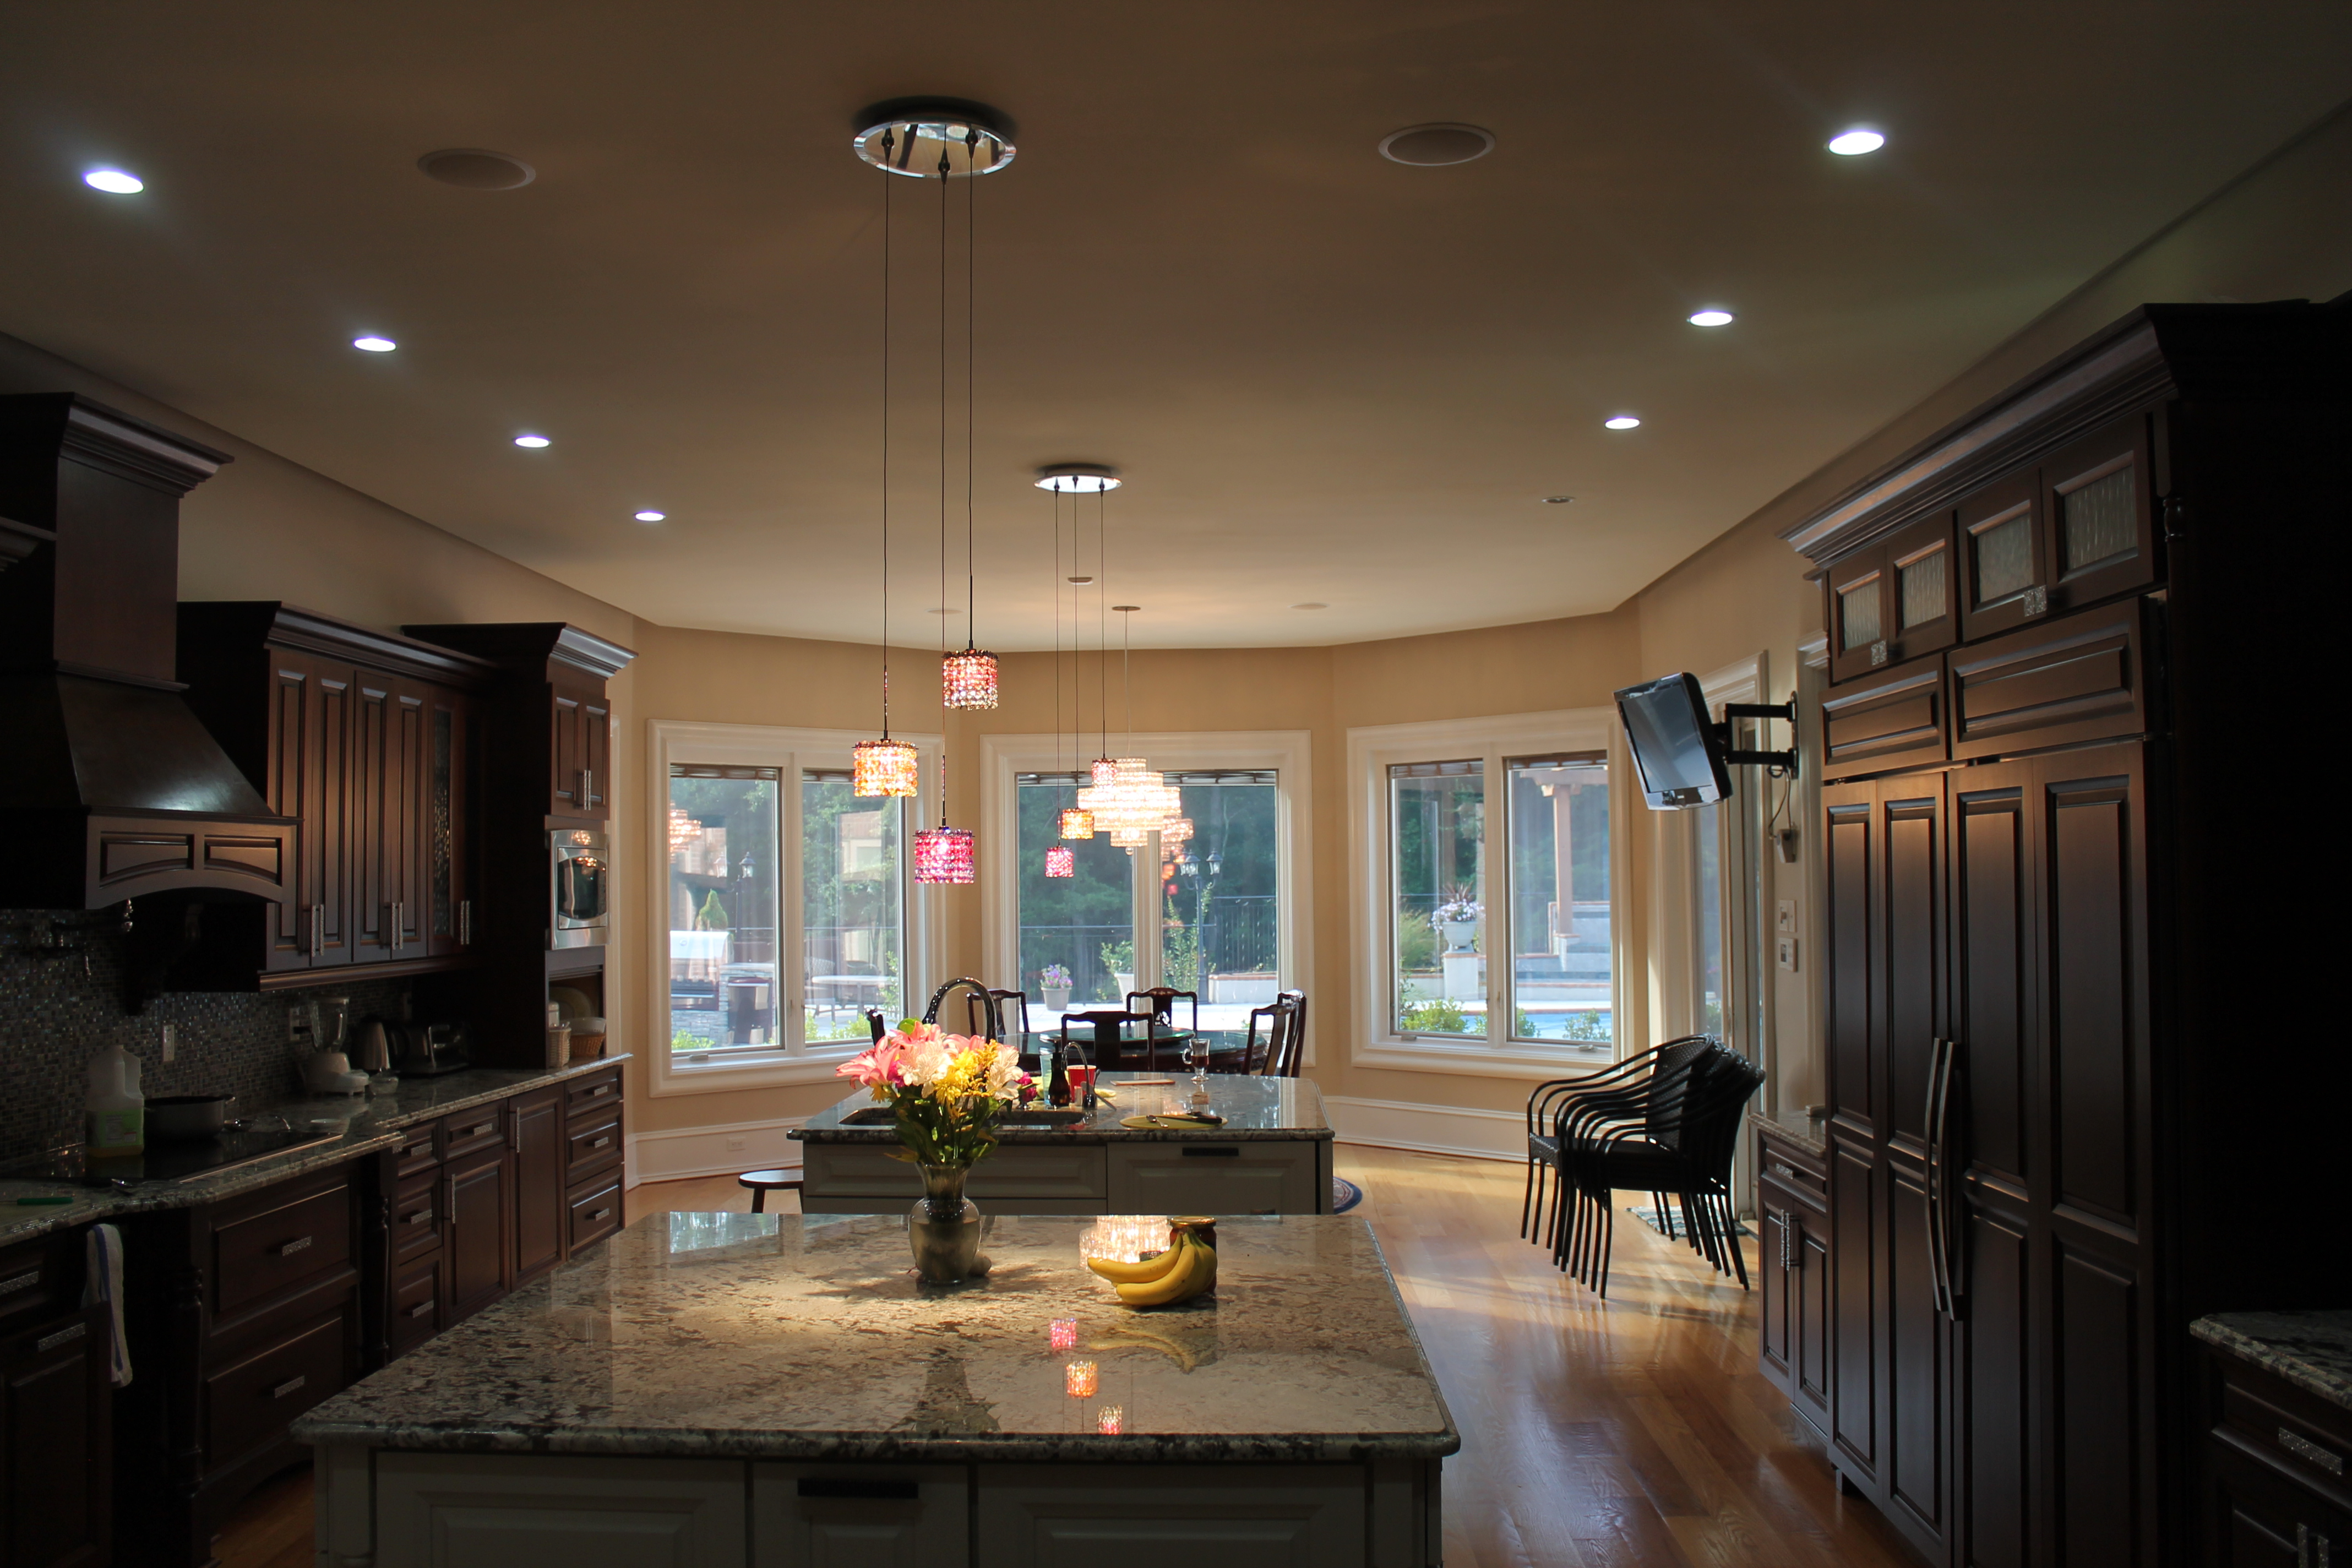 Light Automation Home Automation In Mcdonough Peachtree Marietta Fayetteville Ga